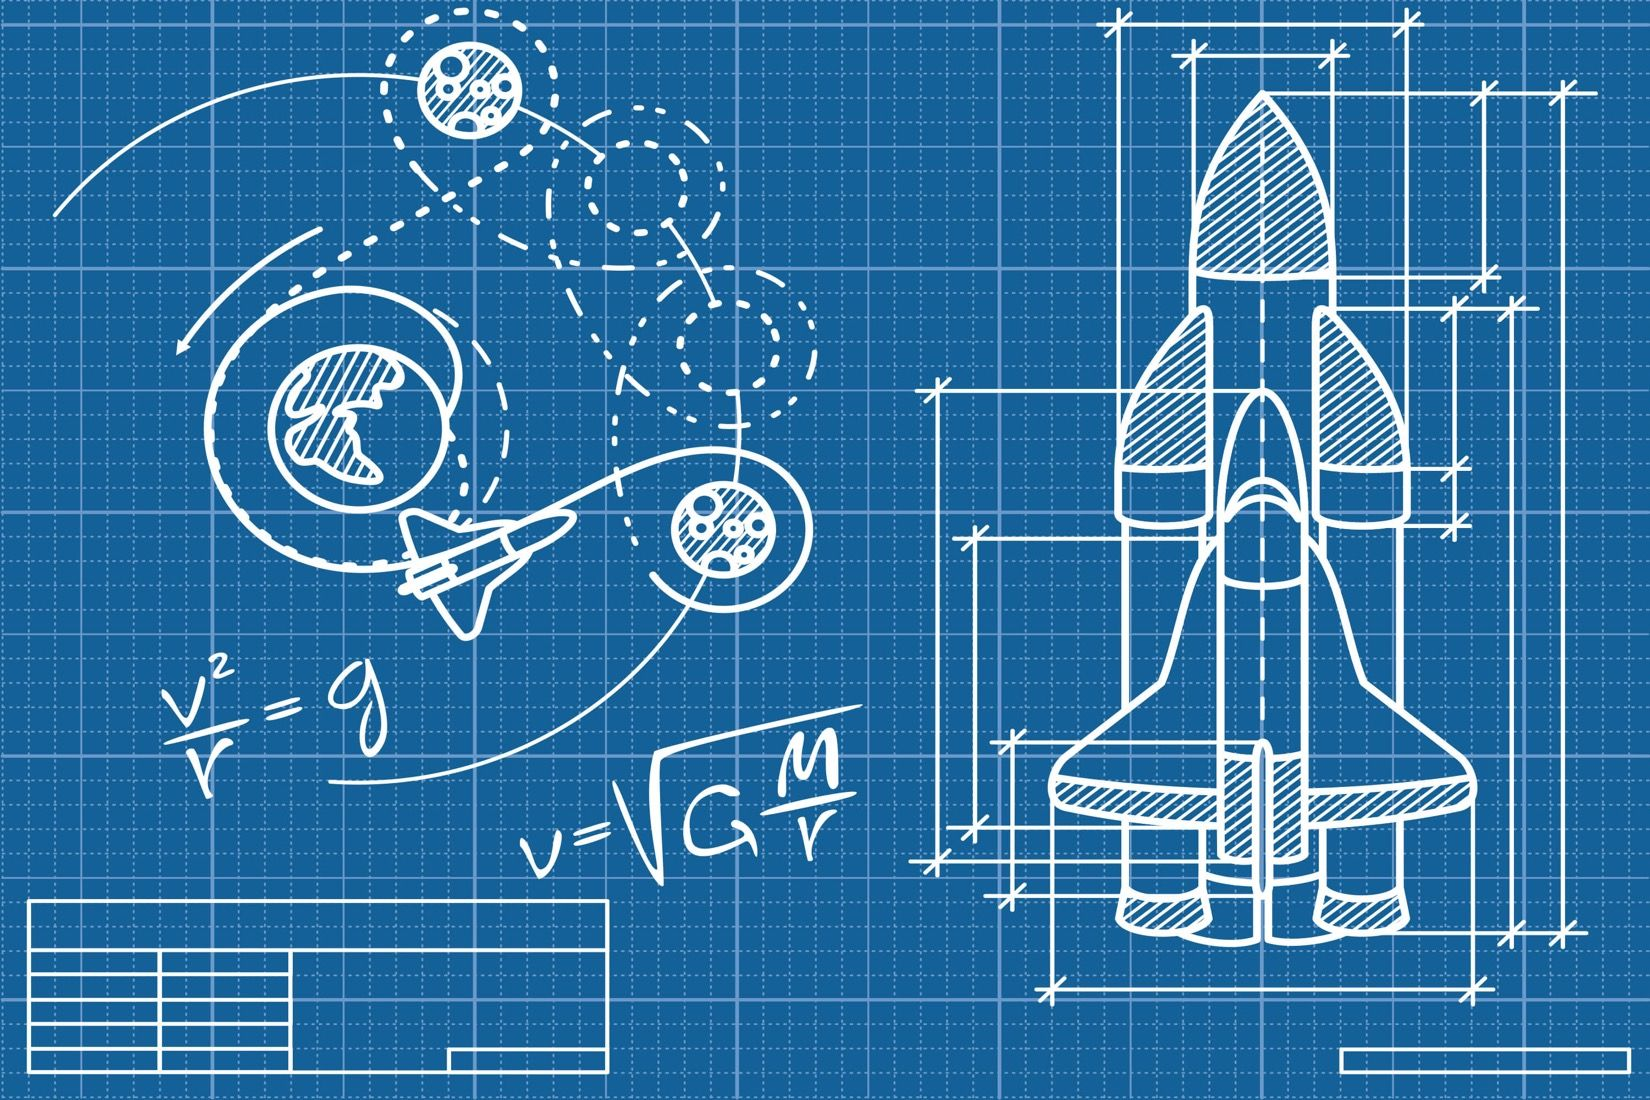 Rocket blueprint wallpaper wall mural muralswallpaper rocket blueprint mural wallpaper custom made to suit your wall size by the uks no malvernweather Gallery